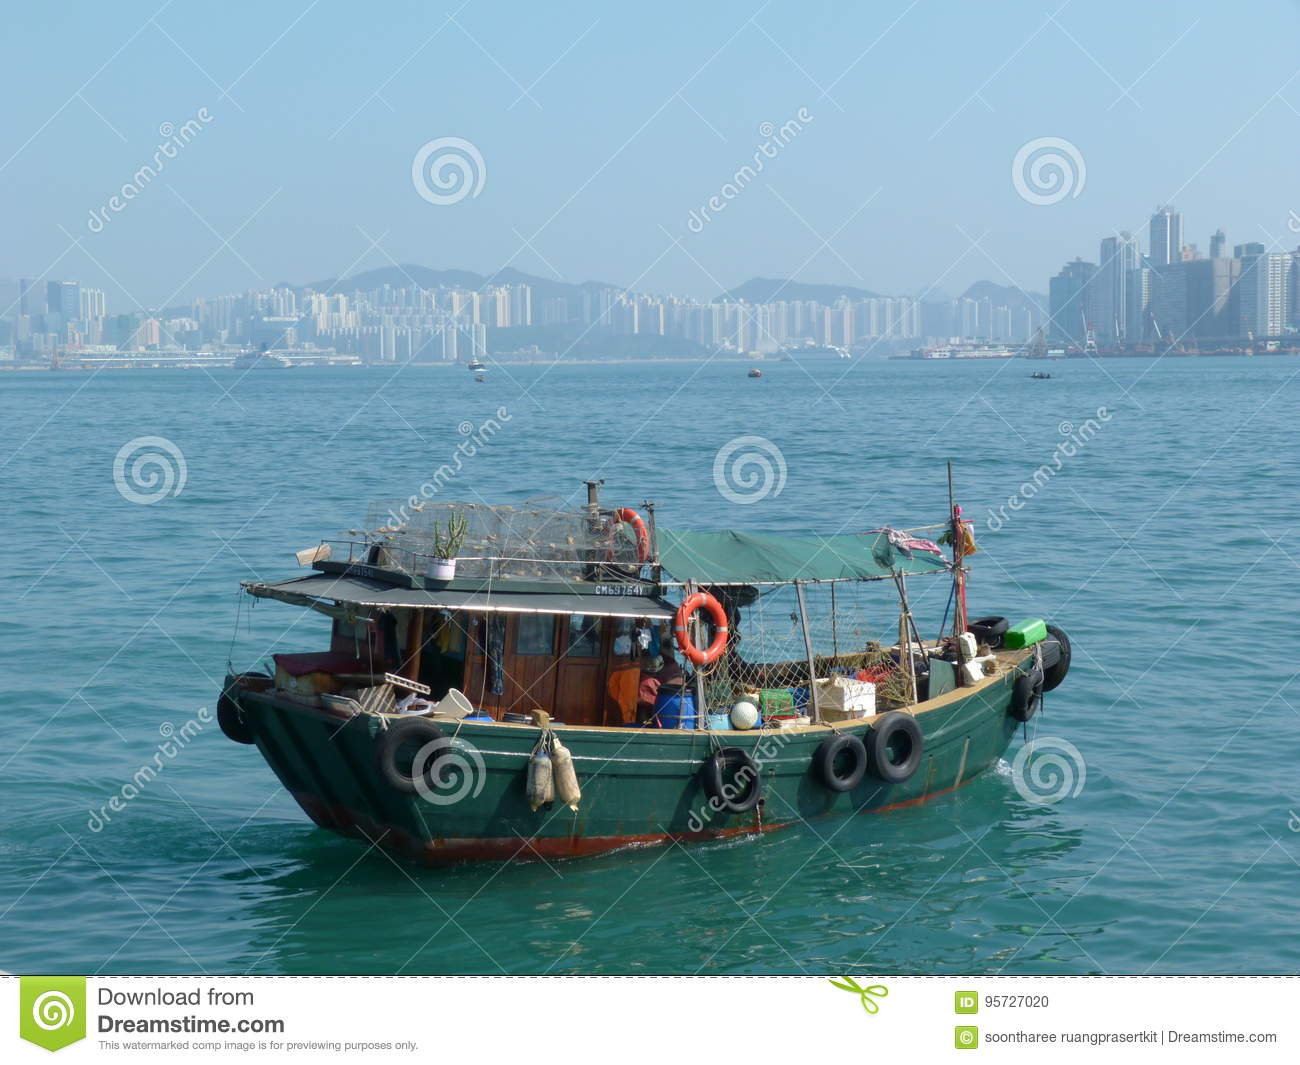 Old fisherman boat with tall building back ground